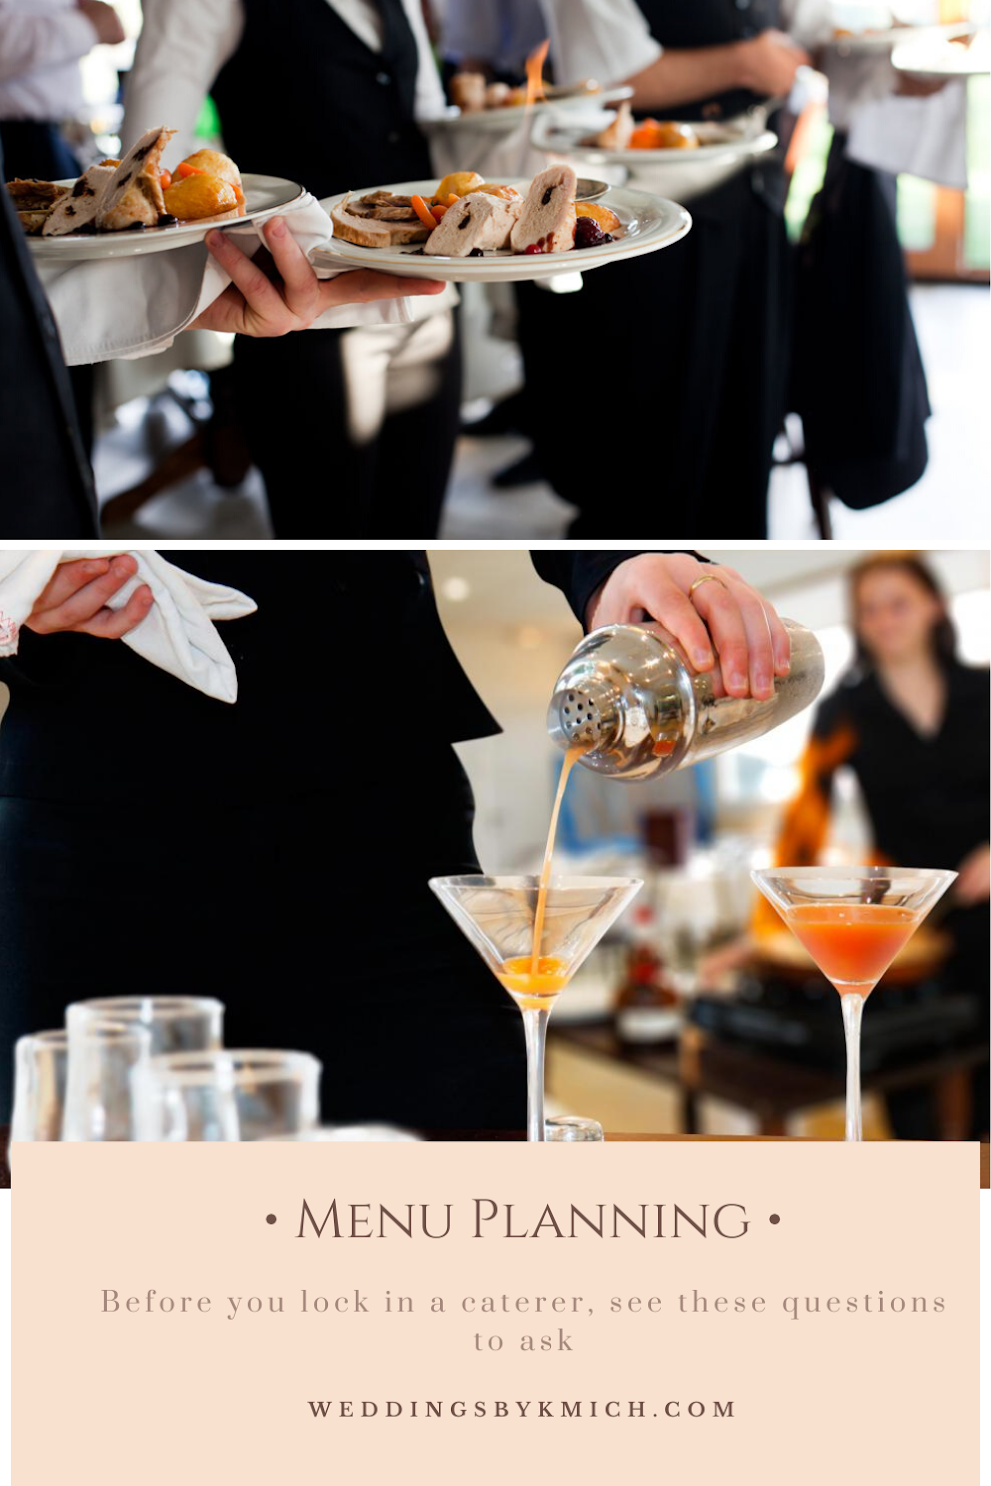 Planning Your Wedding Menu? Here's What You Need to Ask the Caterer